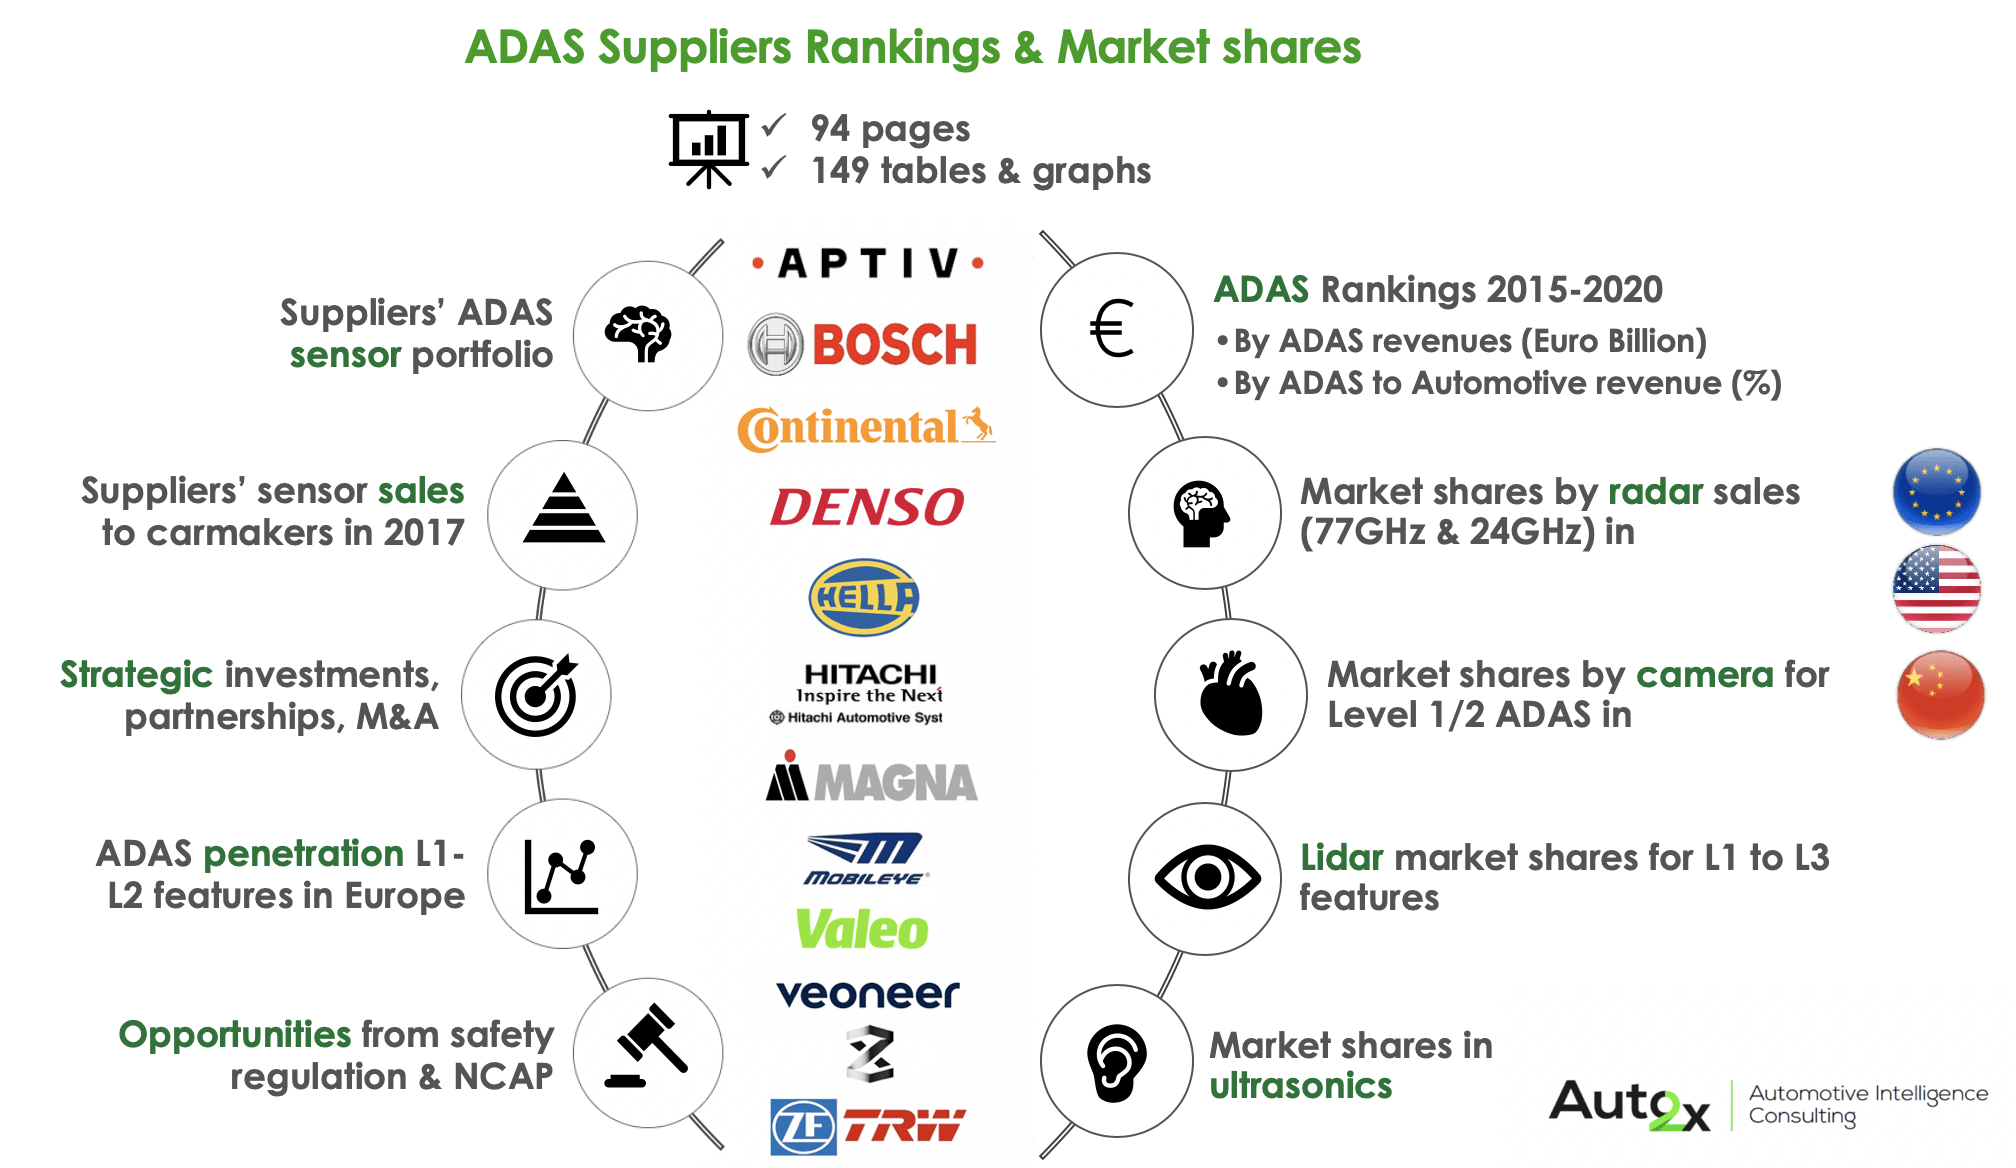 ADAS suppliers